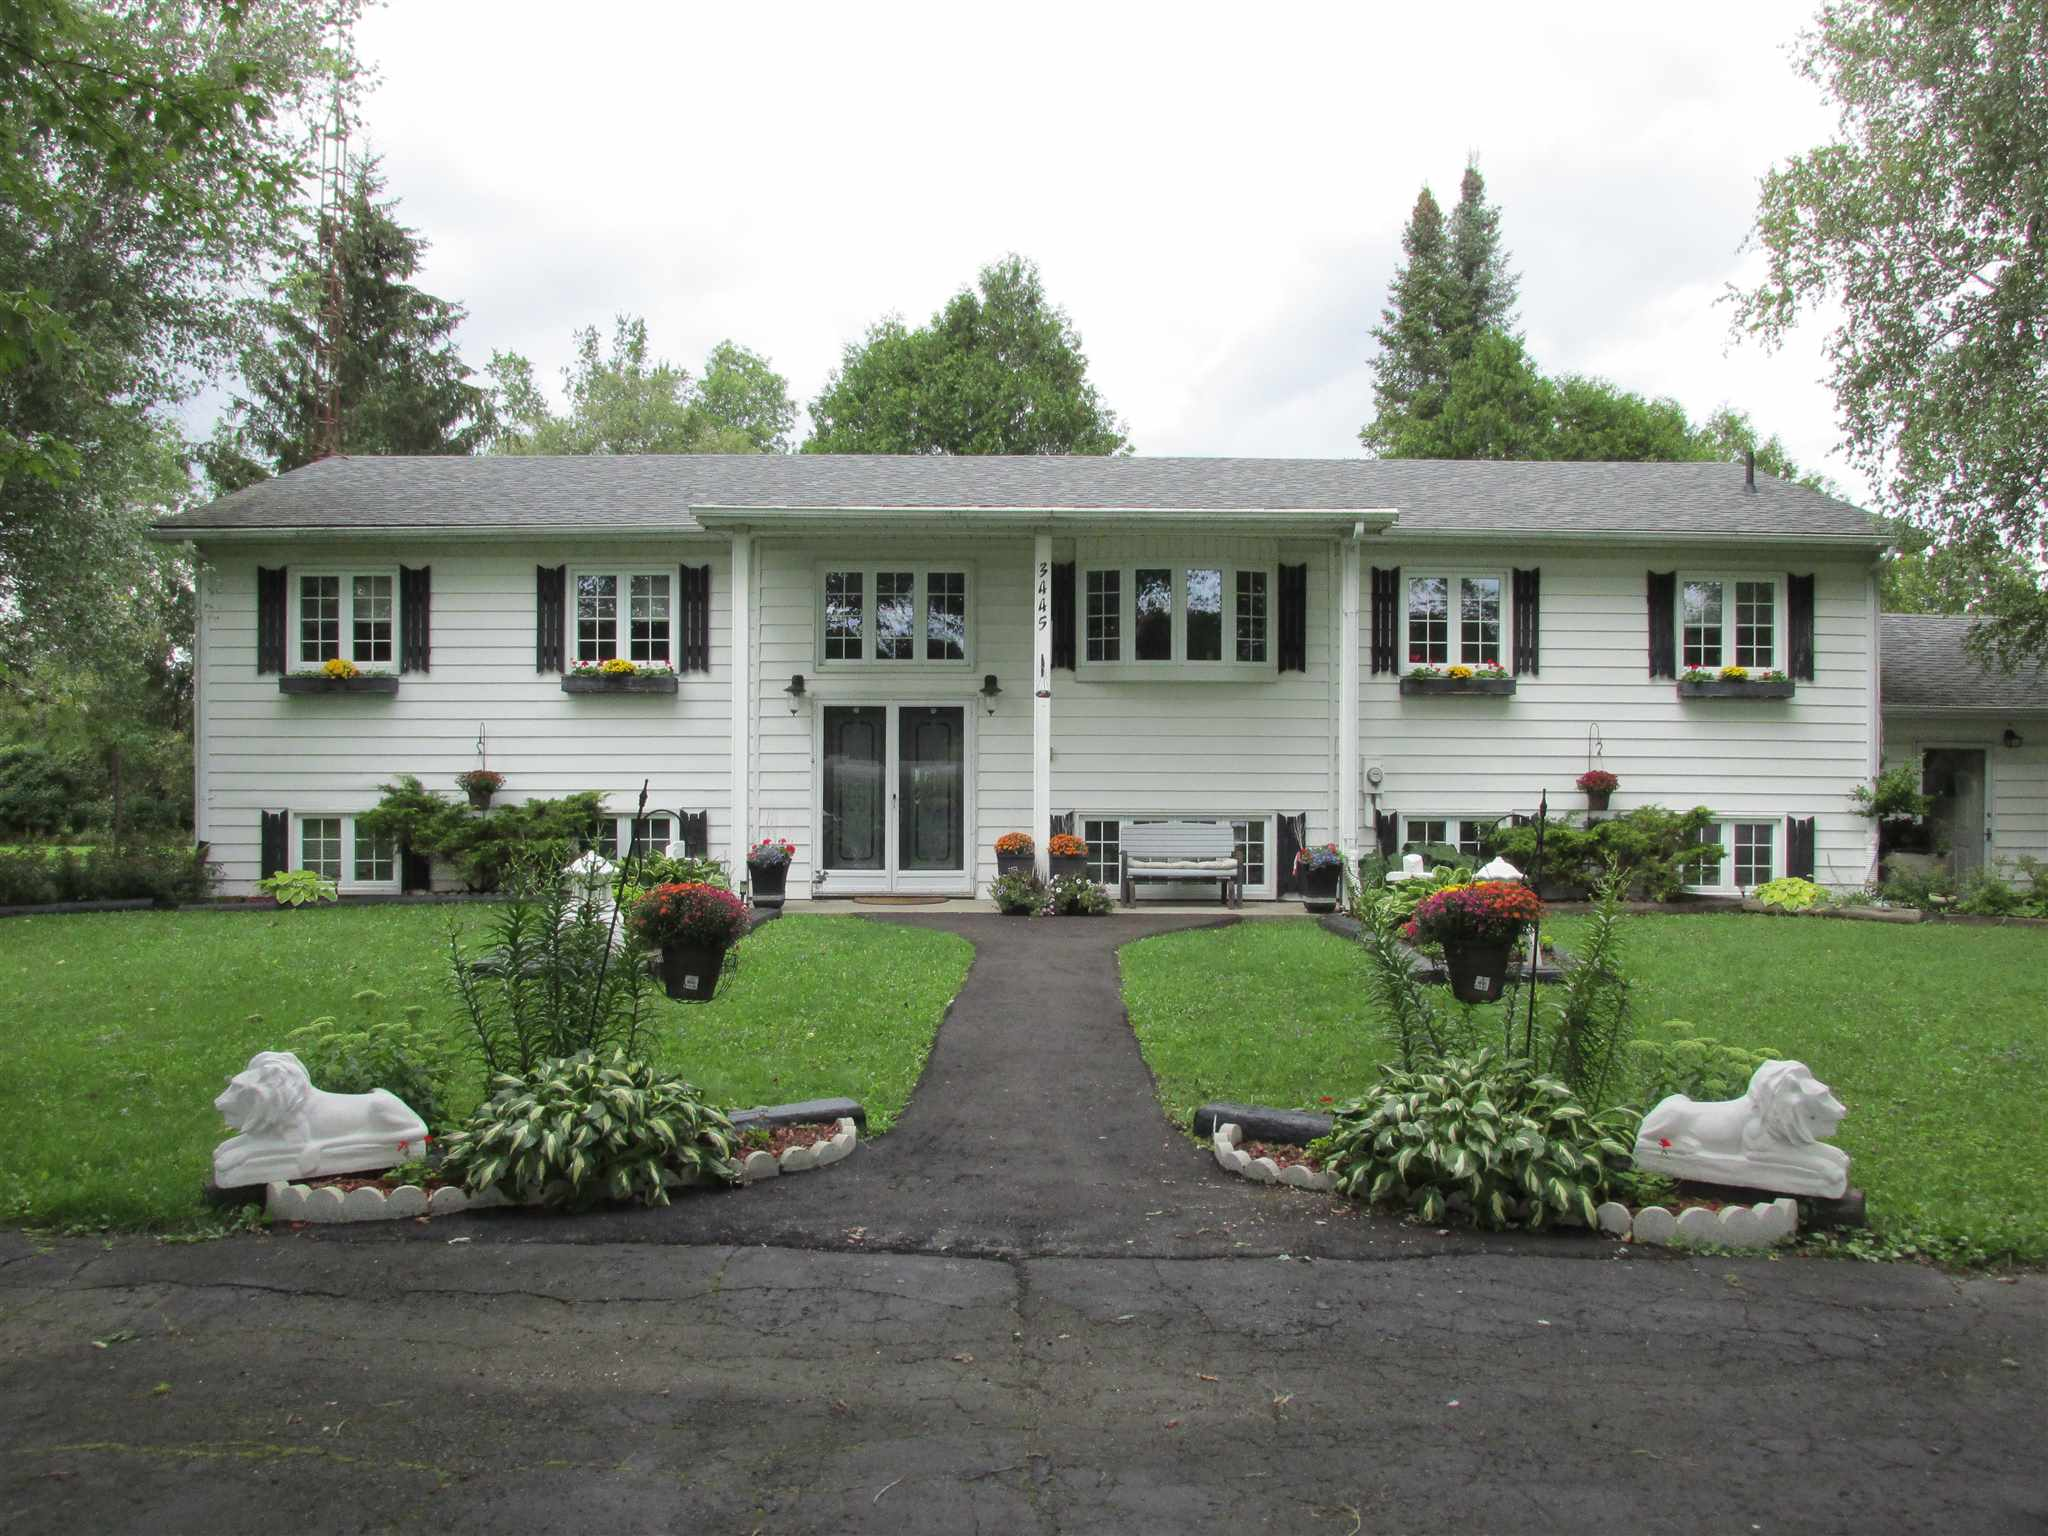 3445 wilton road, South Frontenac Ontario, Canada